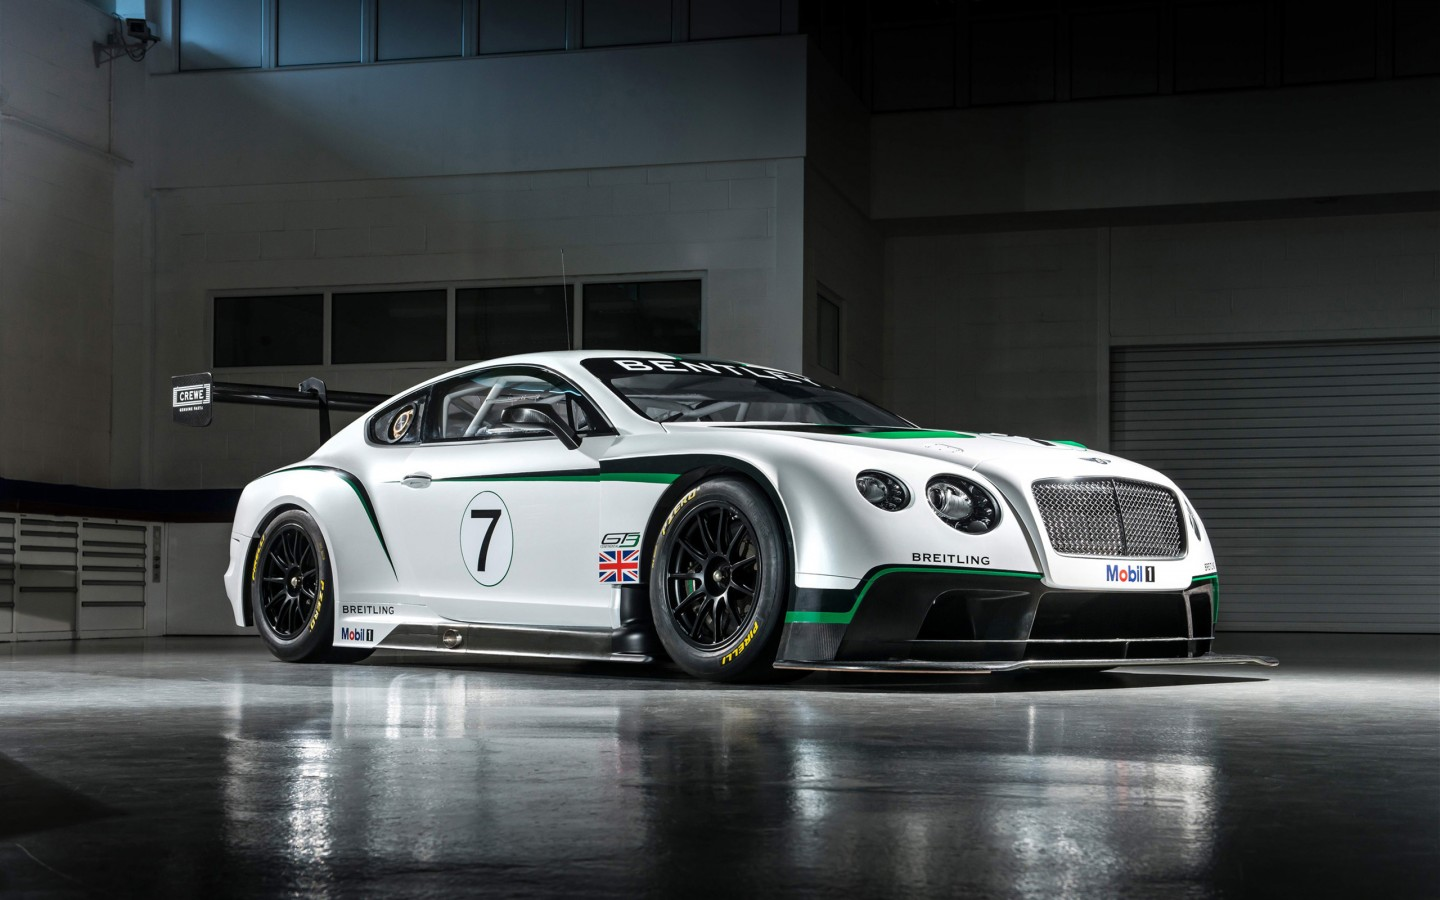 Cute Iphone Wallpapers Hd Bentley Continental Gt3 2013 Wallpapers Hd Wallpapers